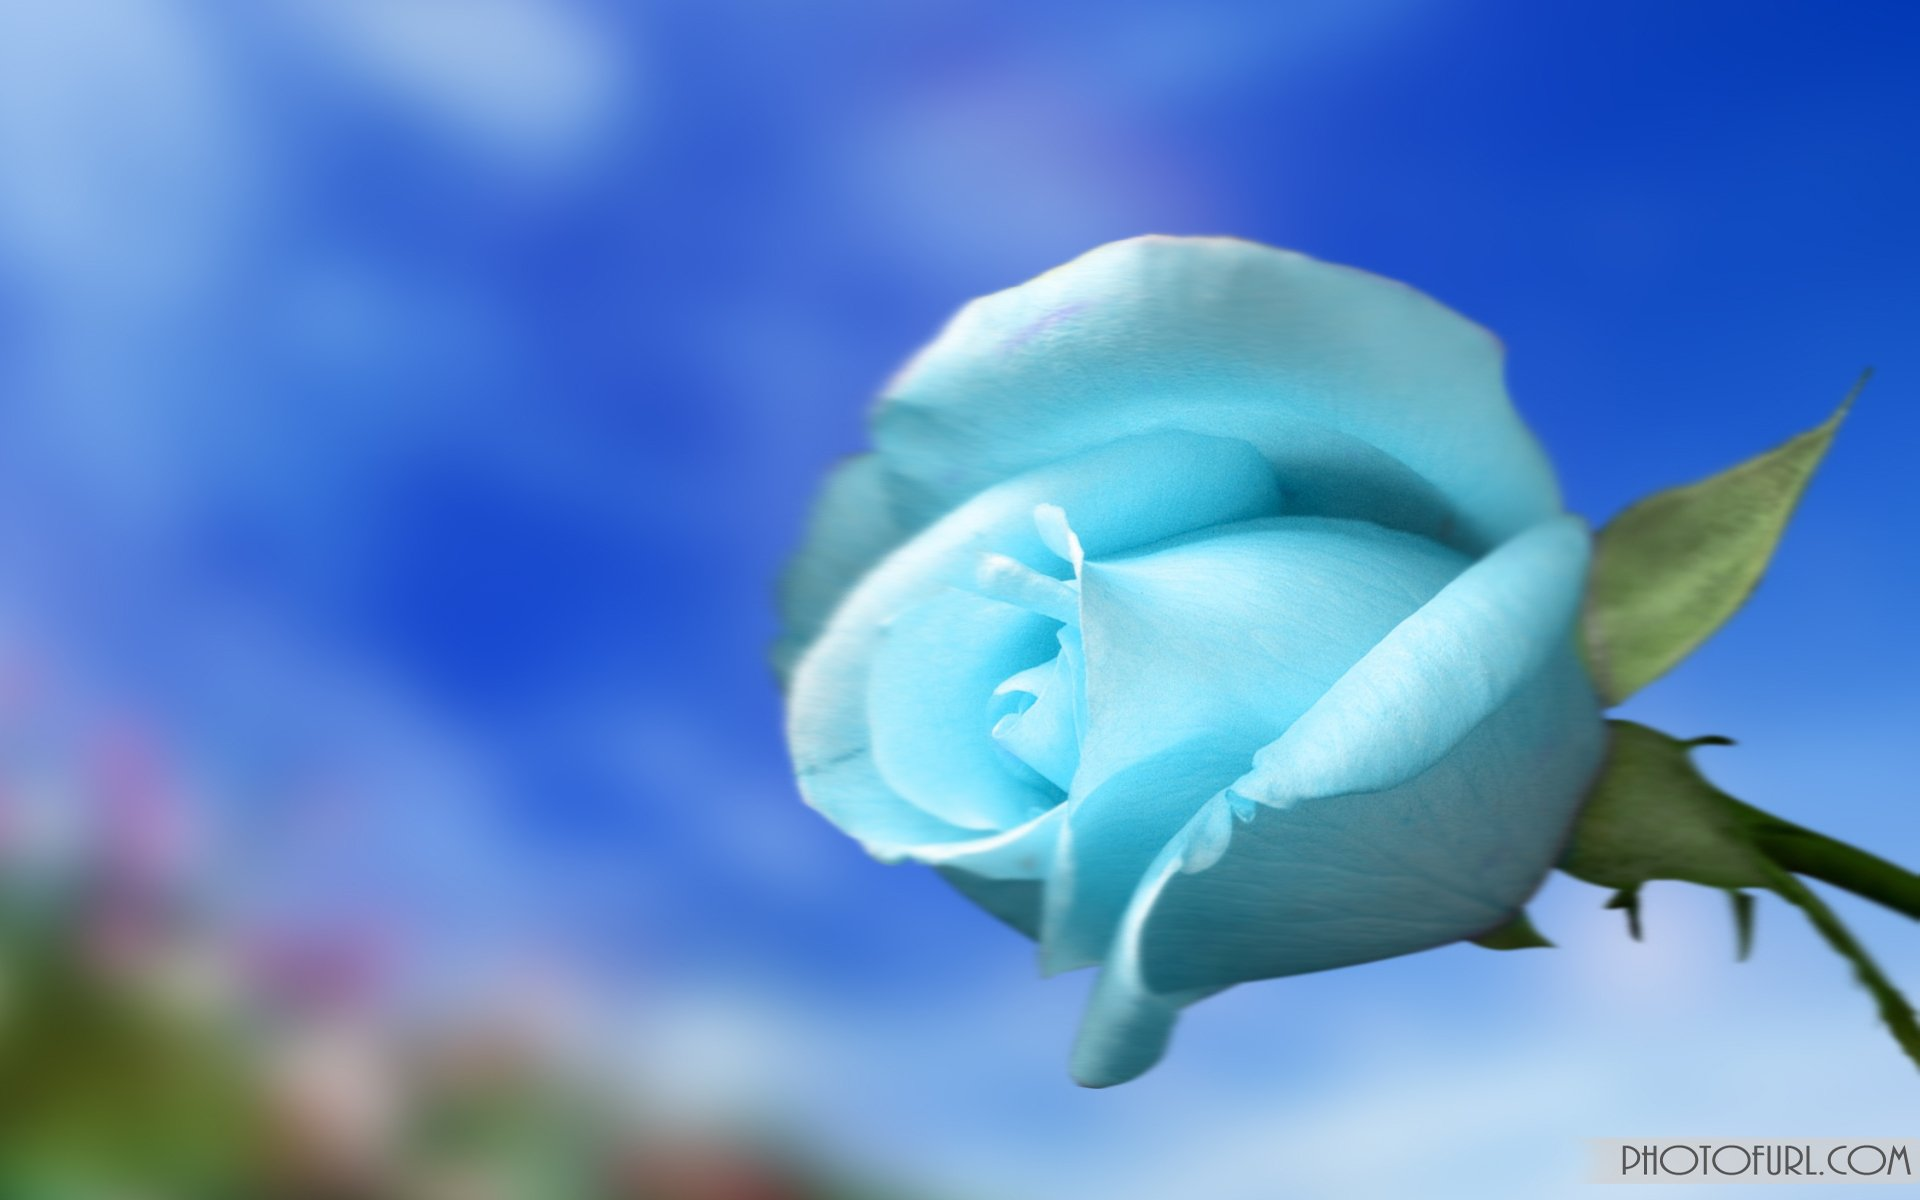 Light Blue Flower Wallpaper - WallpaperSafari Light Blue Flower Wallpaper